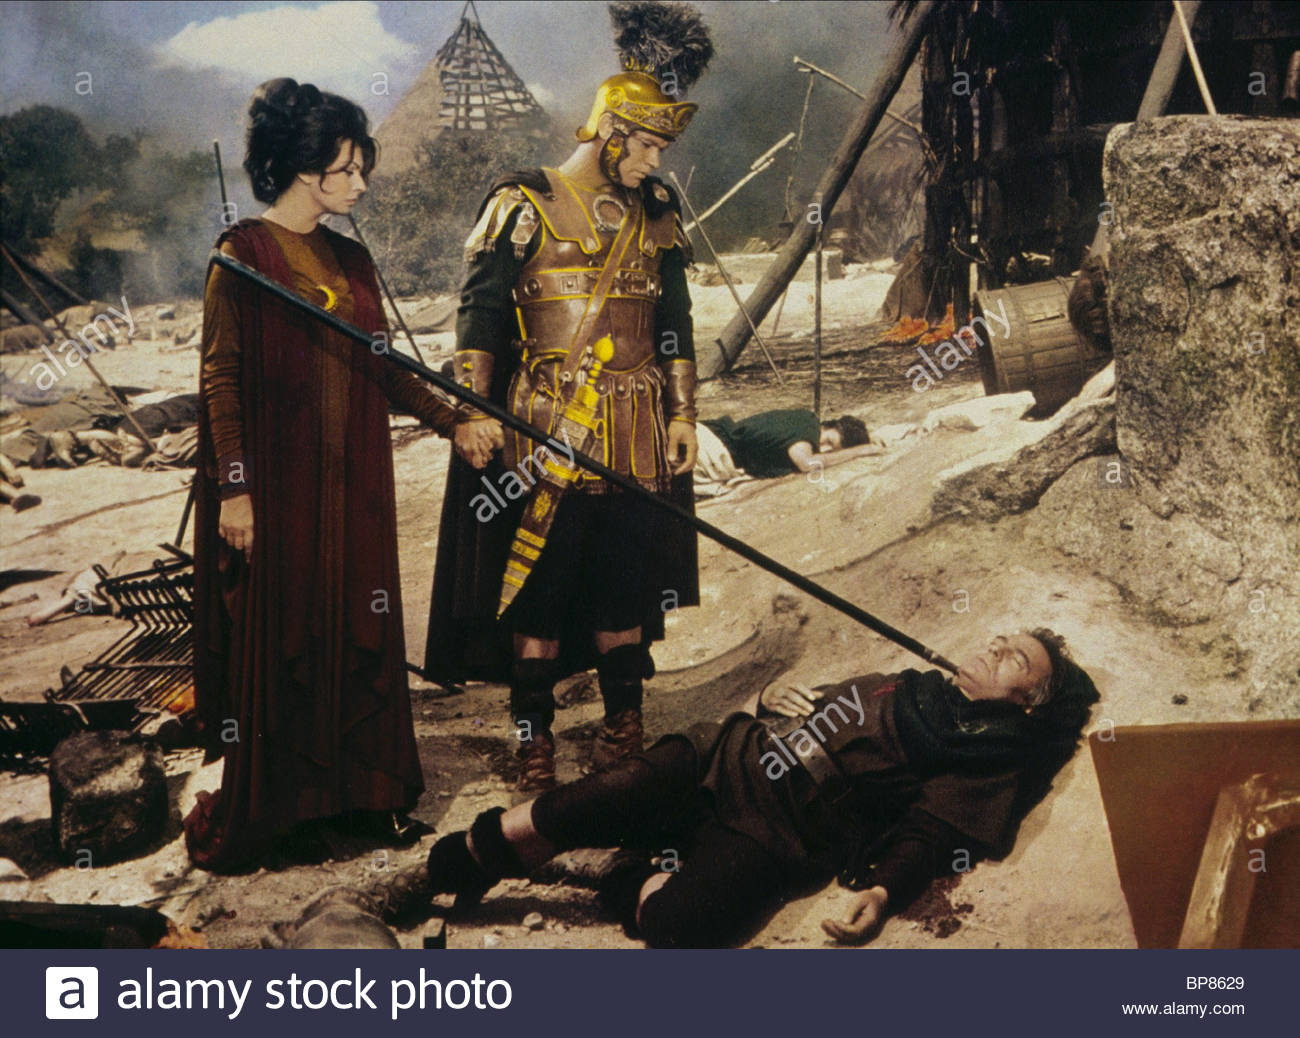 The fall of the Roman Empire - the result of relaxing success 72